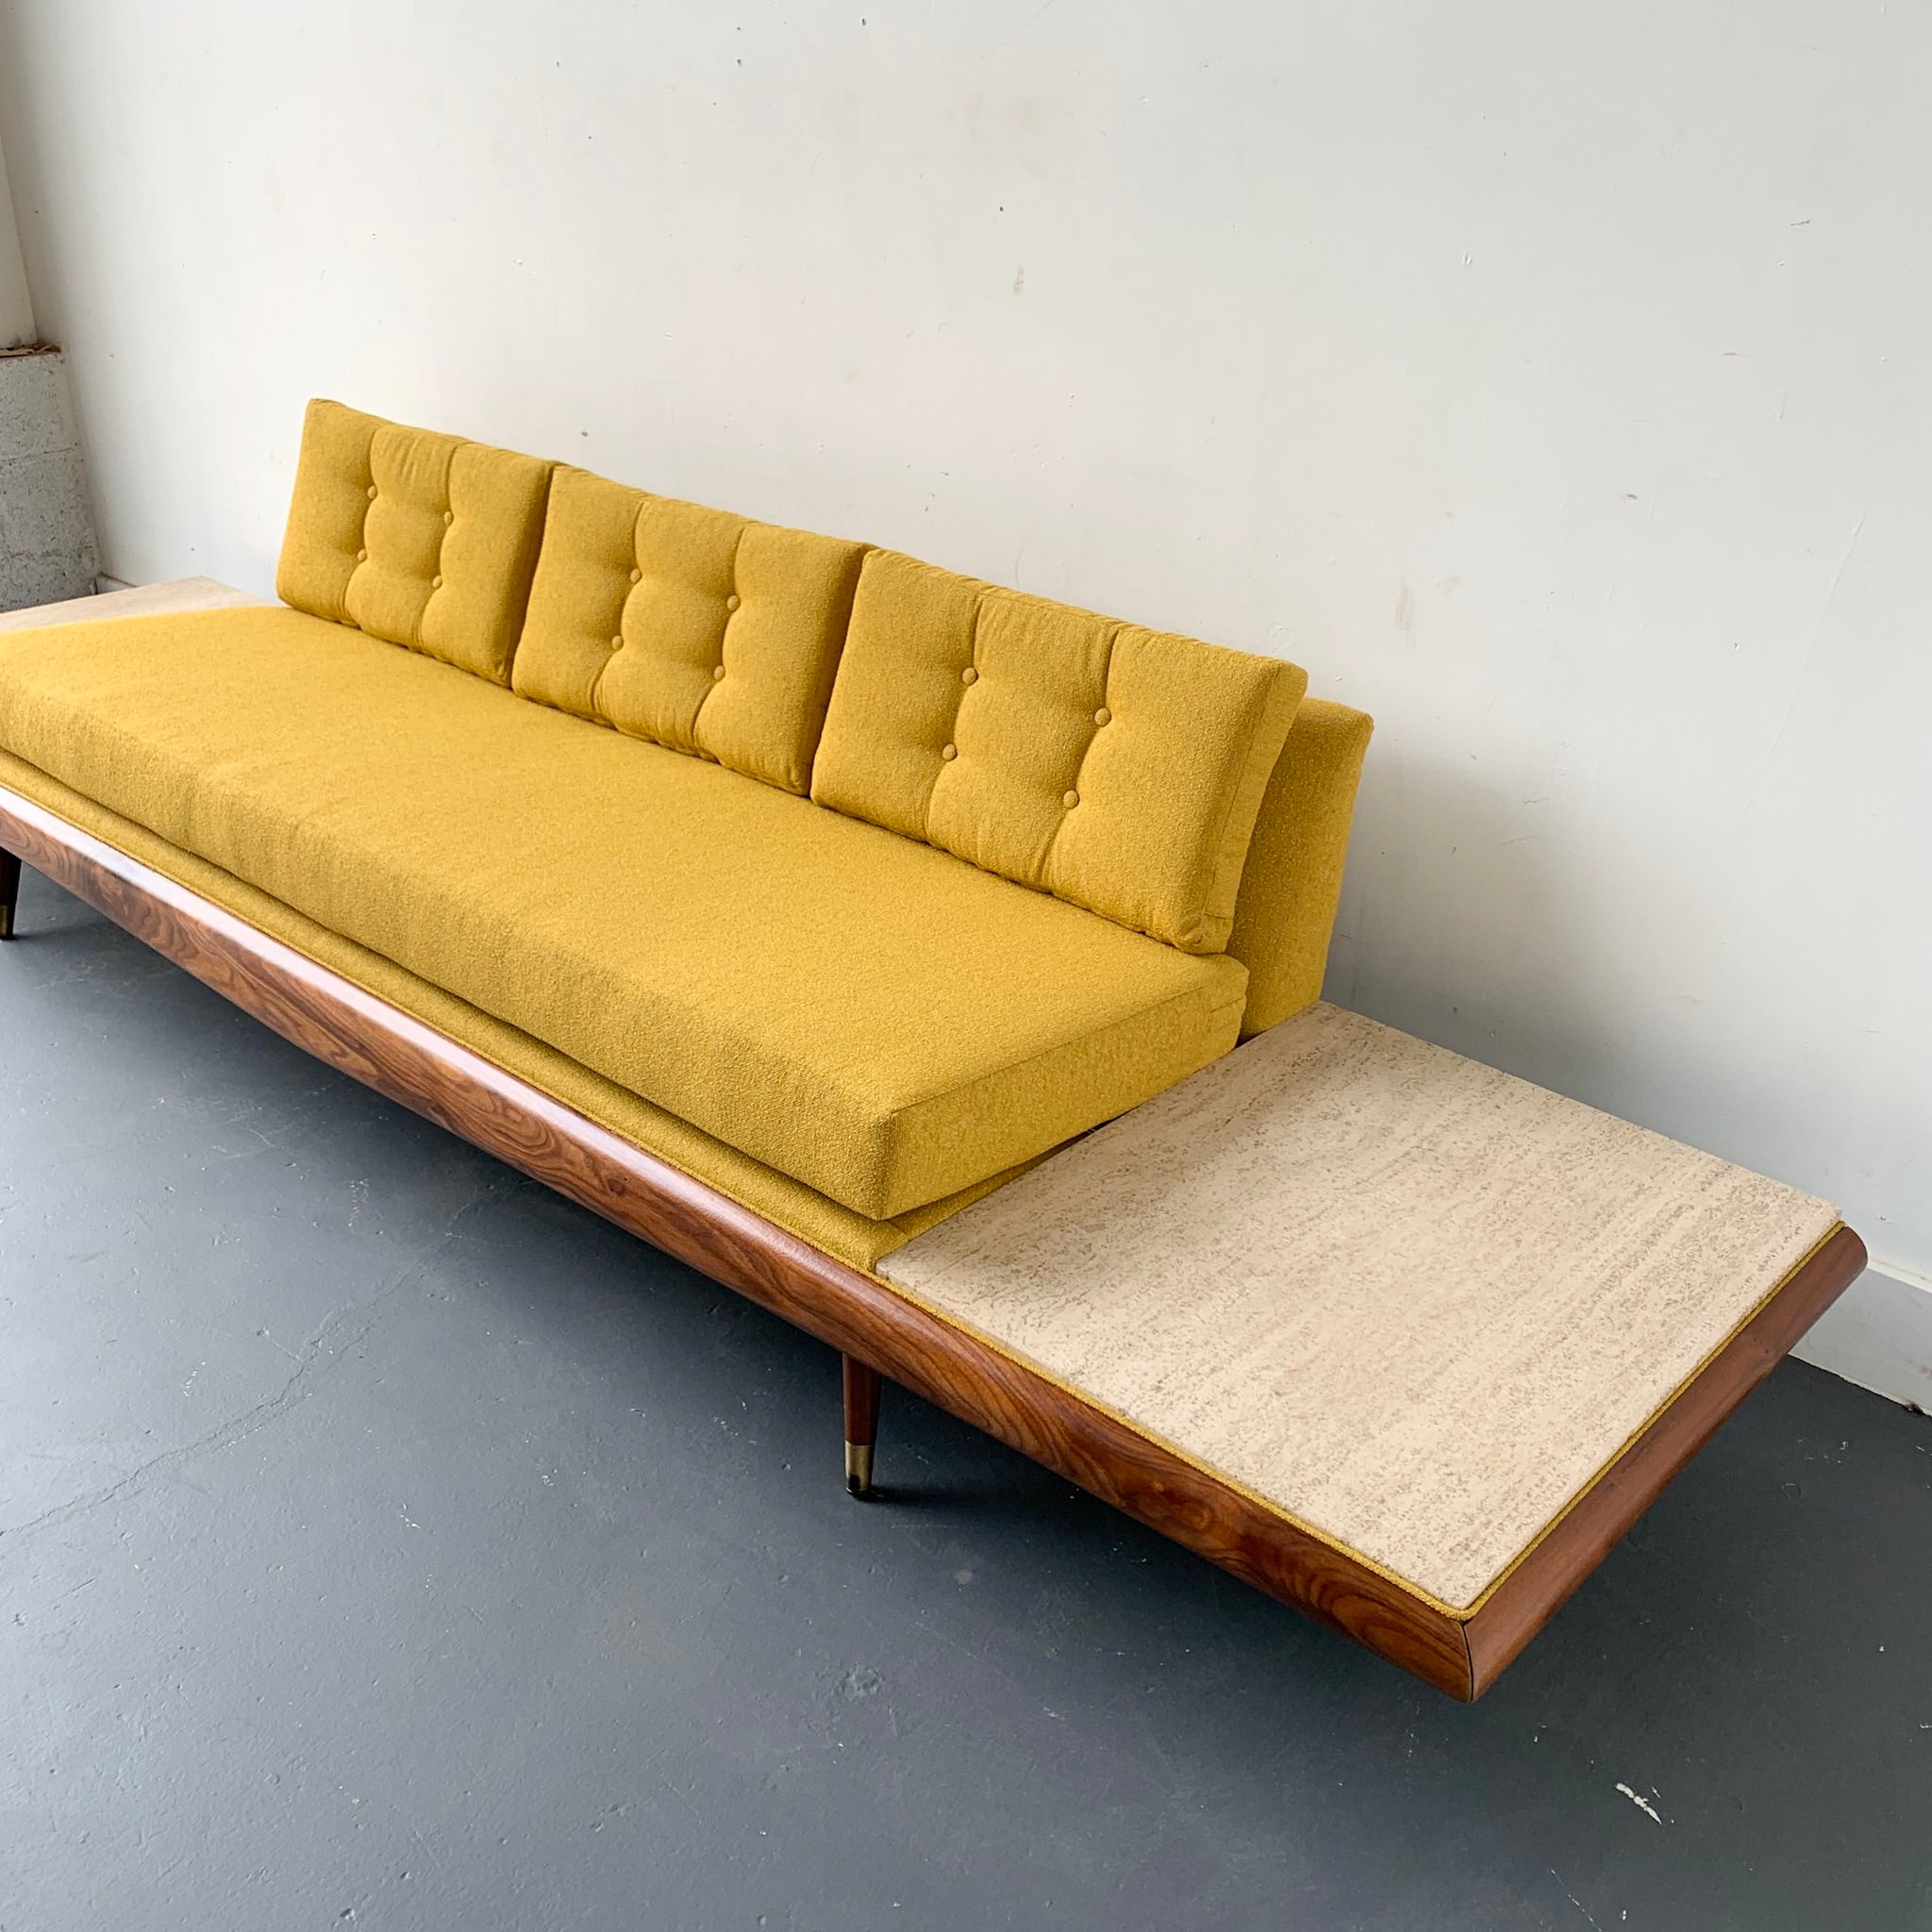 Adrian Pearsall Platform Sofa with Travertine End Tables